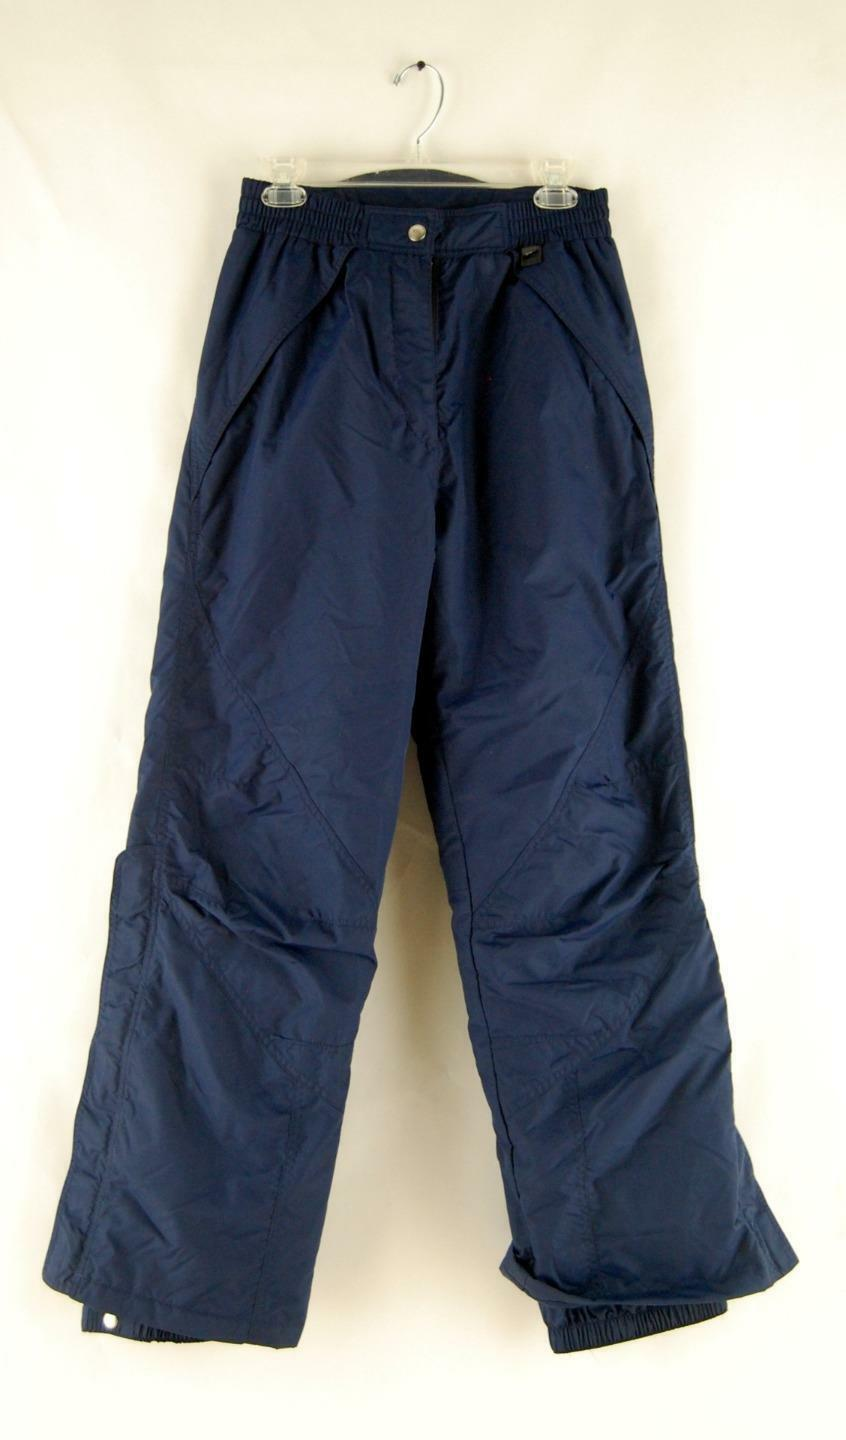 CB Sports bluee Woman's Pants Zipper Insulated Waterproof Ski Snowboard Size M